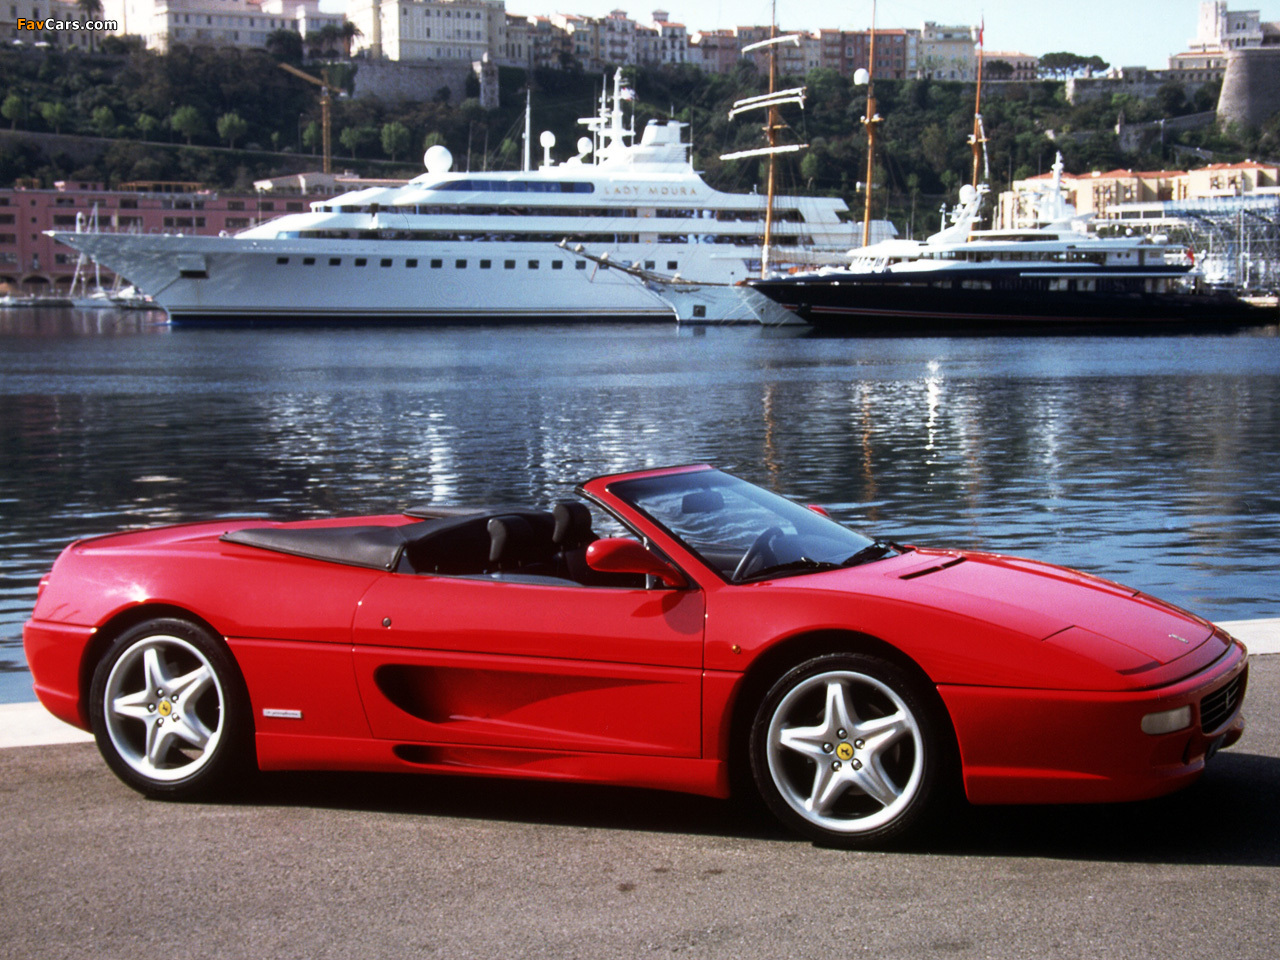 ferrari f355 spider wallpaper - photo #8